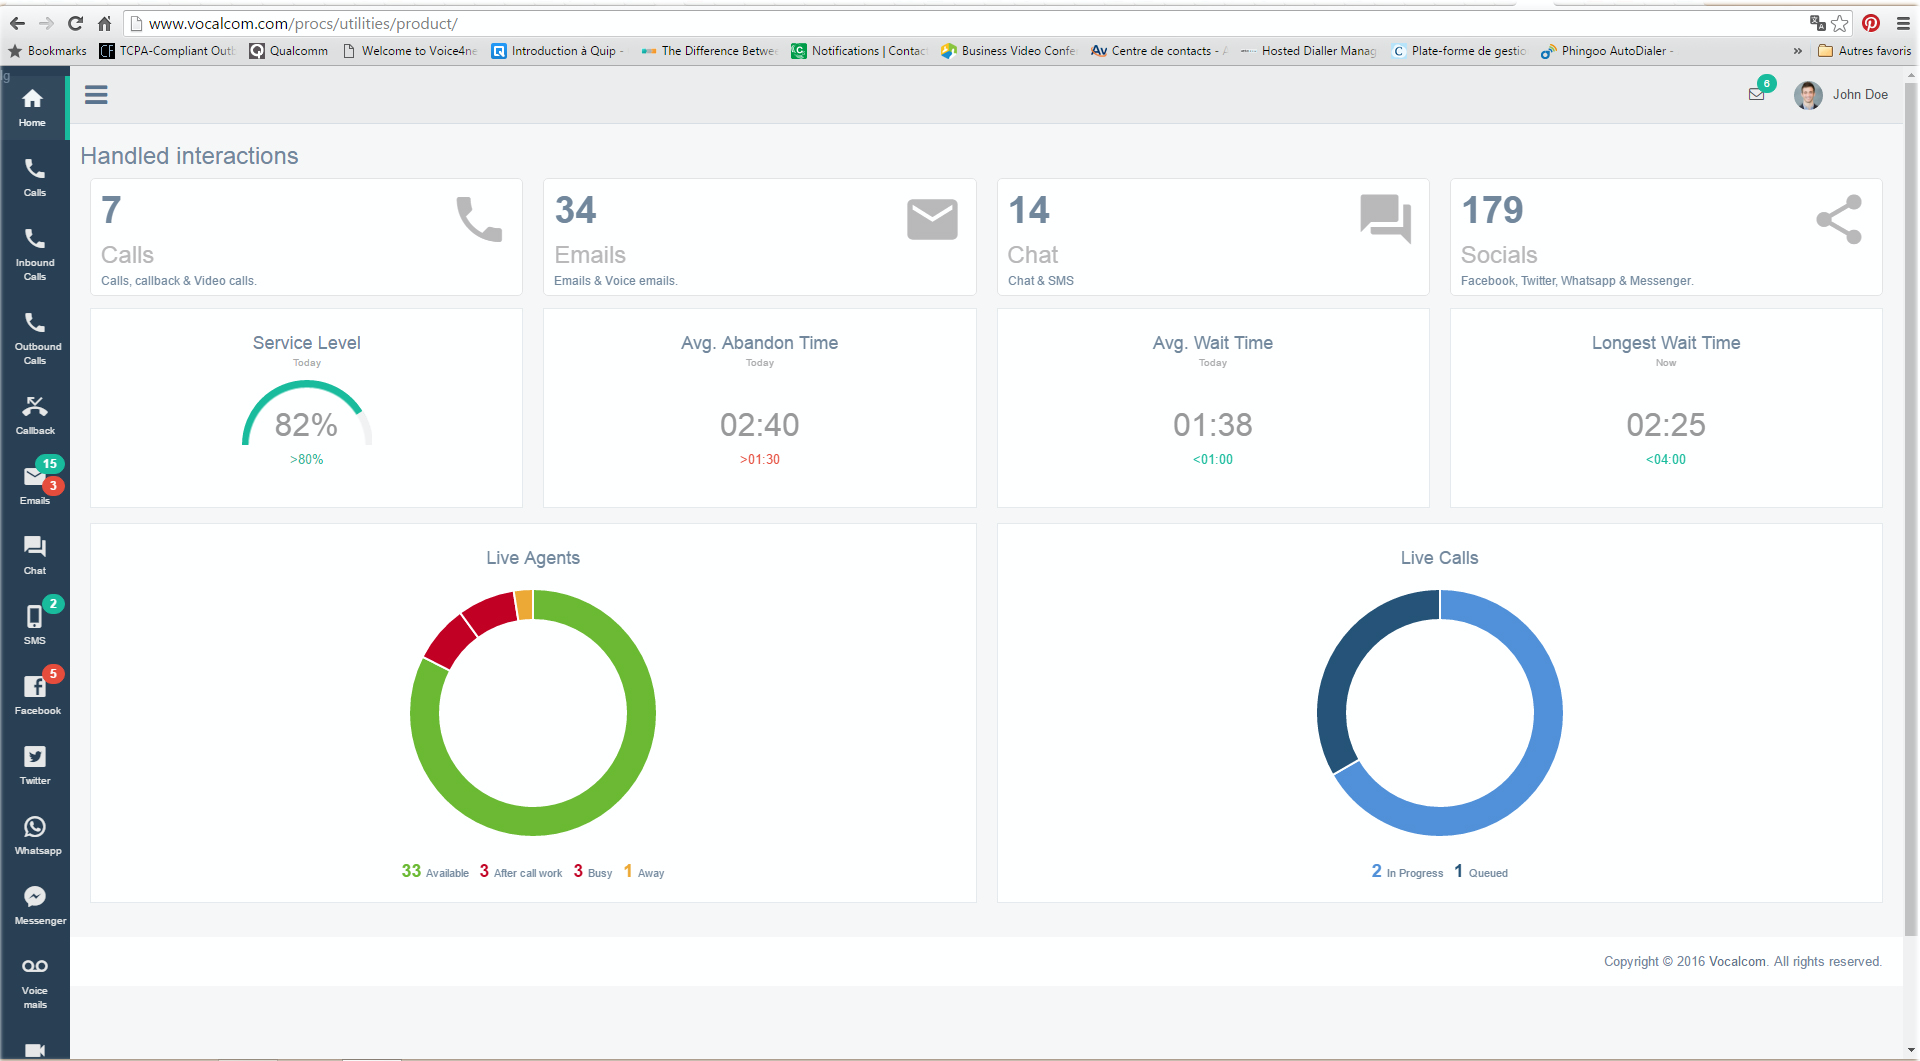 Vocalcom Software - A New Breed of Call Center Software. Manage Your Call Center More Effectively. Make data-driven decisions with historical reporting and Vocalcom Live's real-time metrics